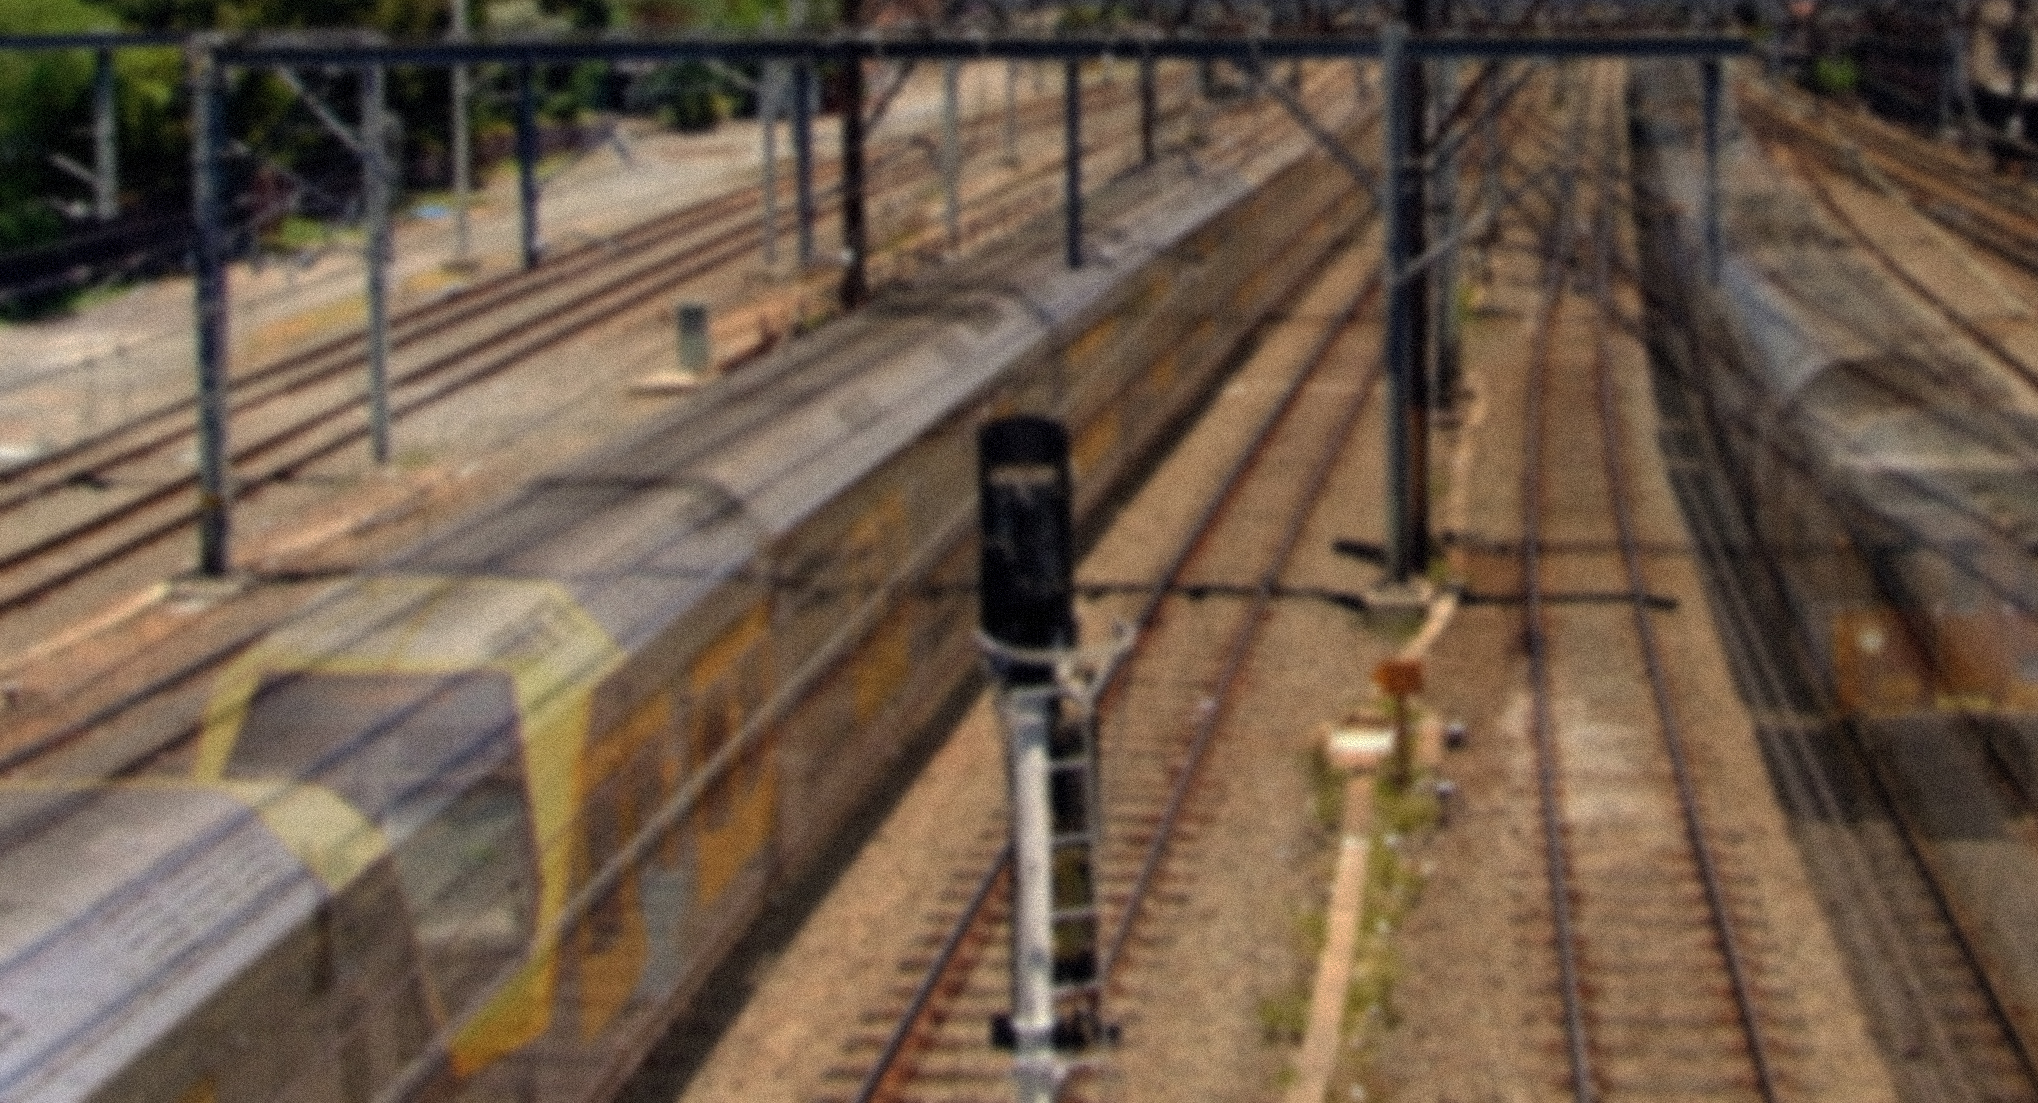 Time-lapse photographs of Sydney trains running along the tracks